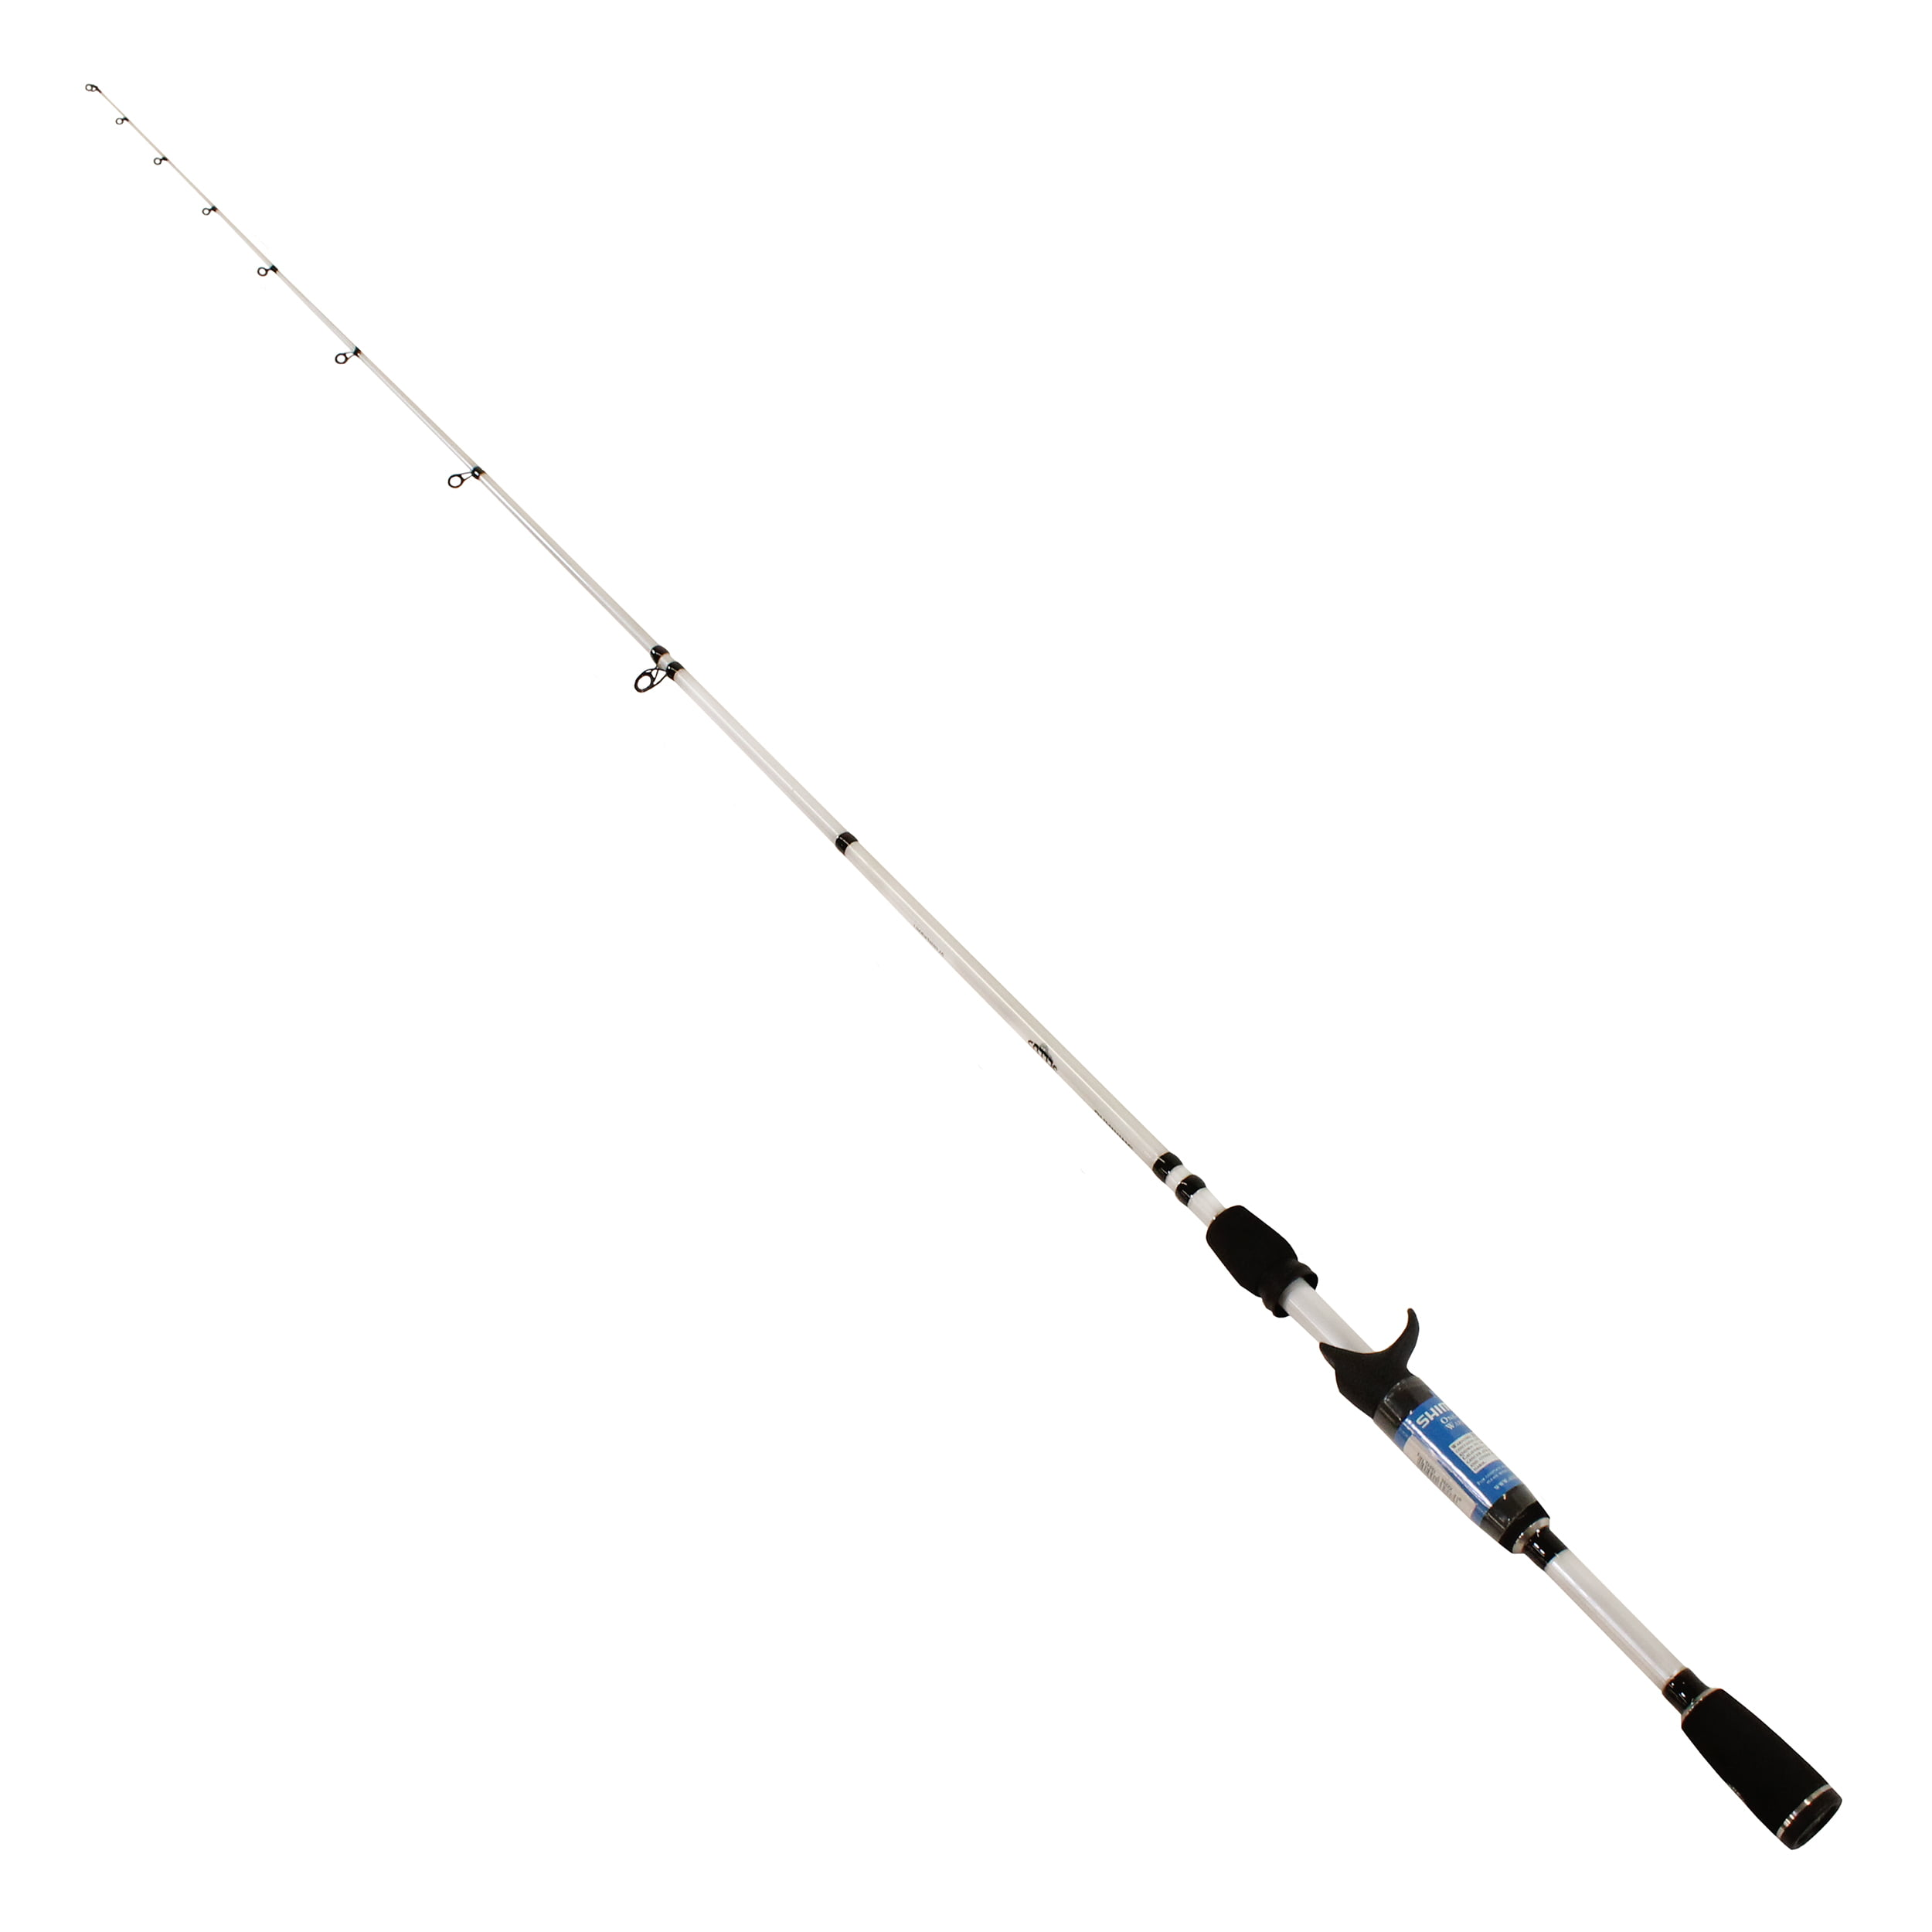 77742213d77 Shimano TDR Trolling Casting Rod 8' Length, 2 Piece Rod, 20-50 lb Line  Rating, 12